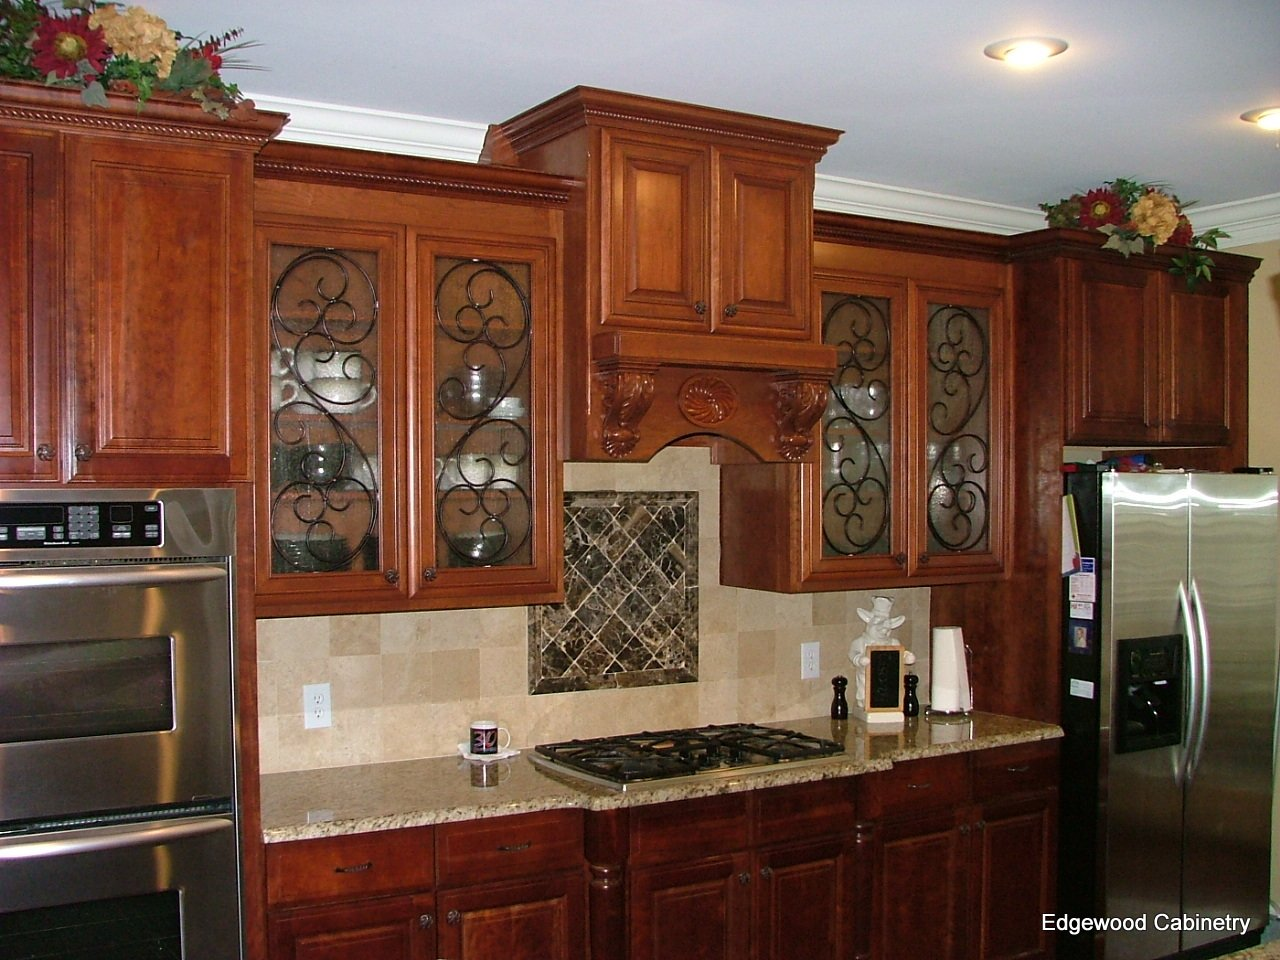 How Glass Front Cabinets Can Enhance Your Kitchen Edgewood Cabinetry